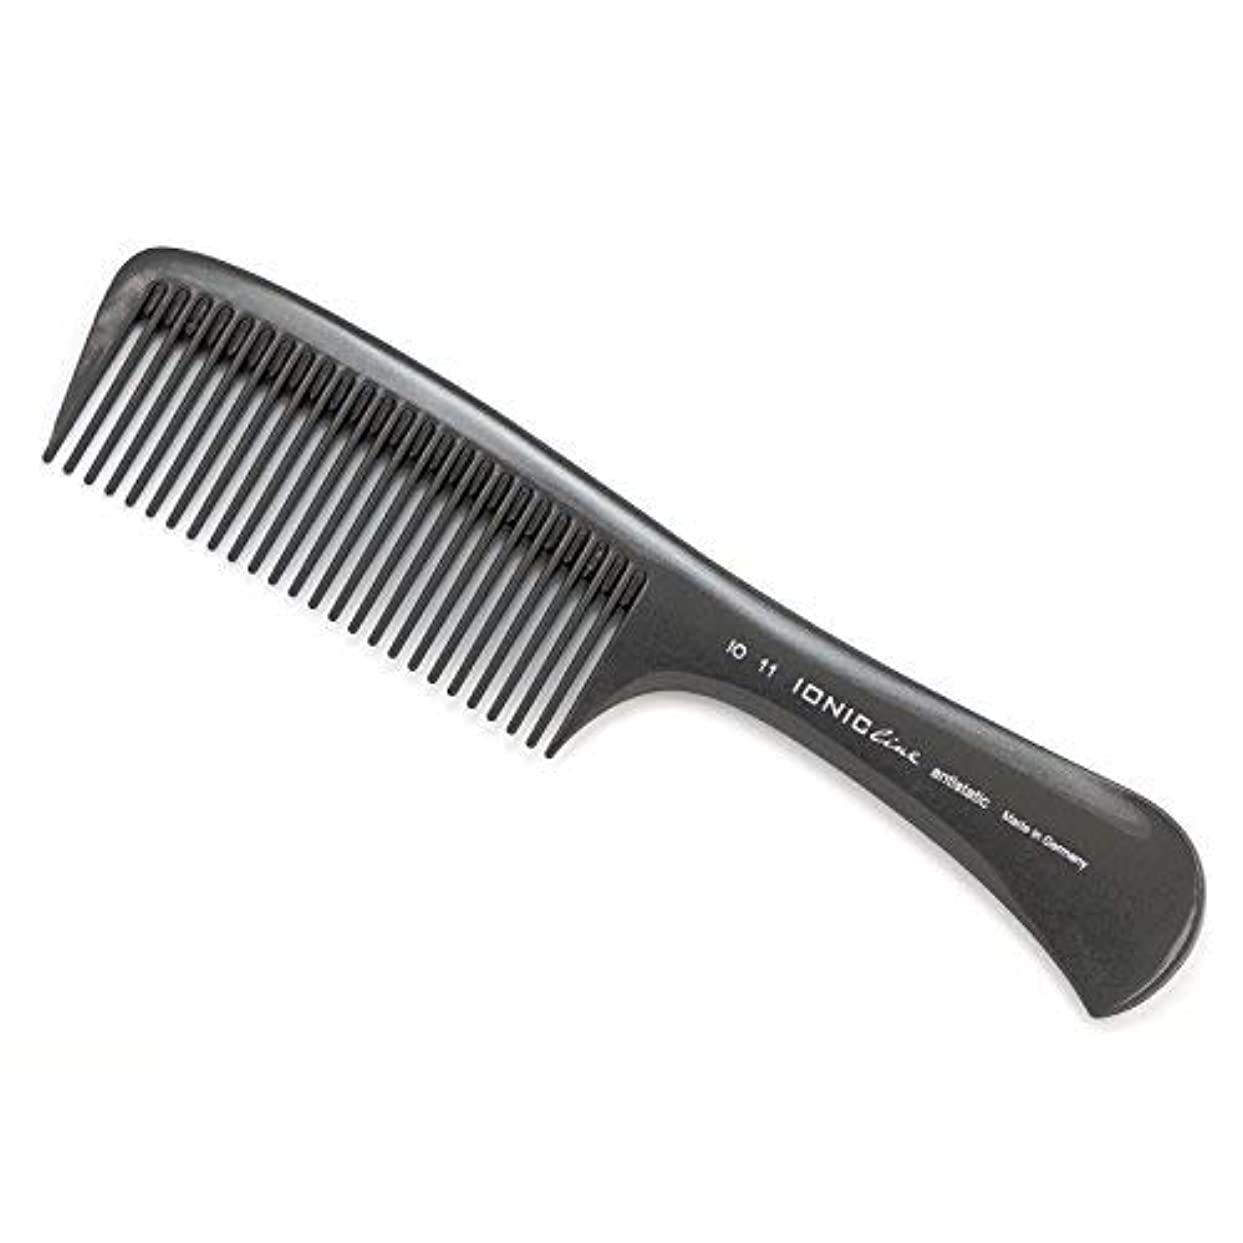 意図高揚したゴミ箱を空にするHercules S?gemann IONIC Line Handle Comb, Big Working Comb | Ionized Thermoplastic - Made in Germany [並行輸入品]